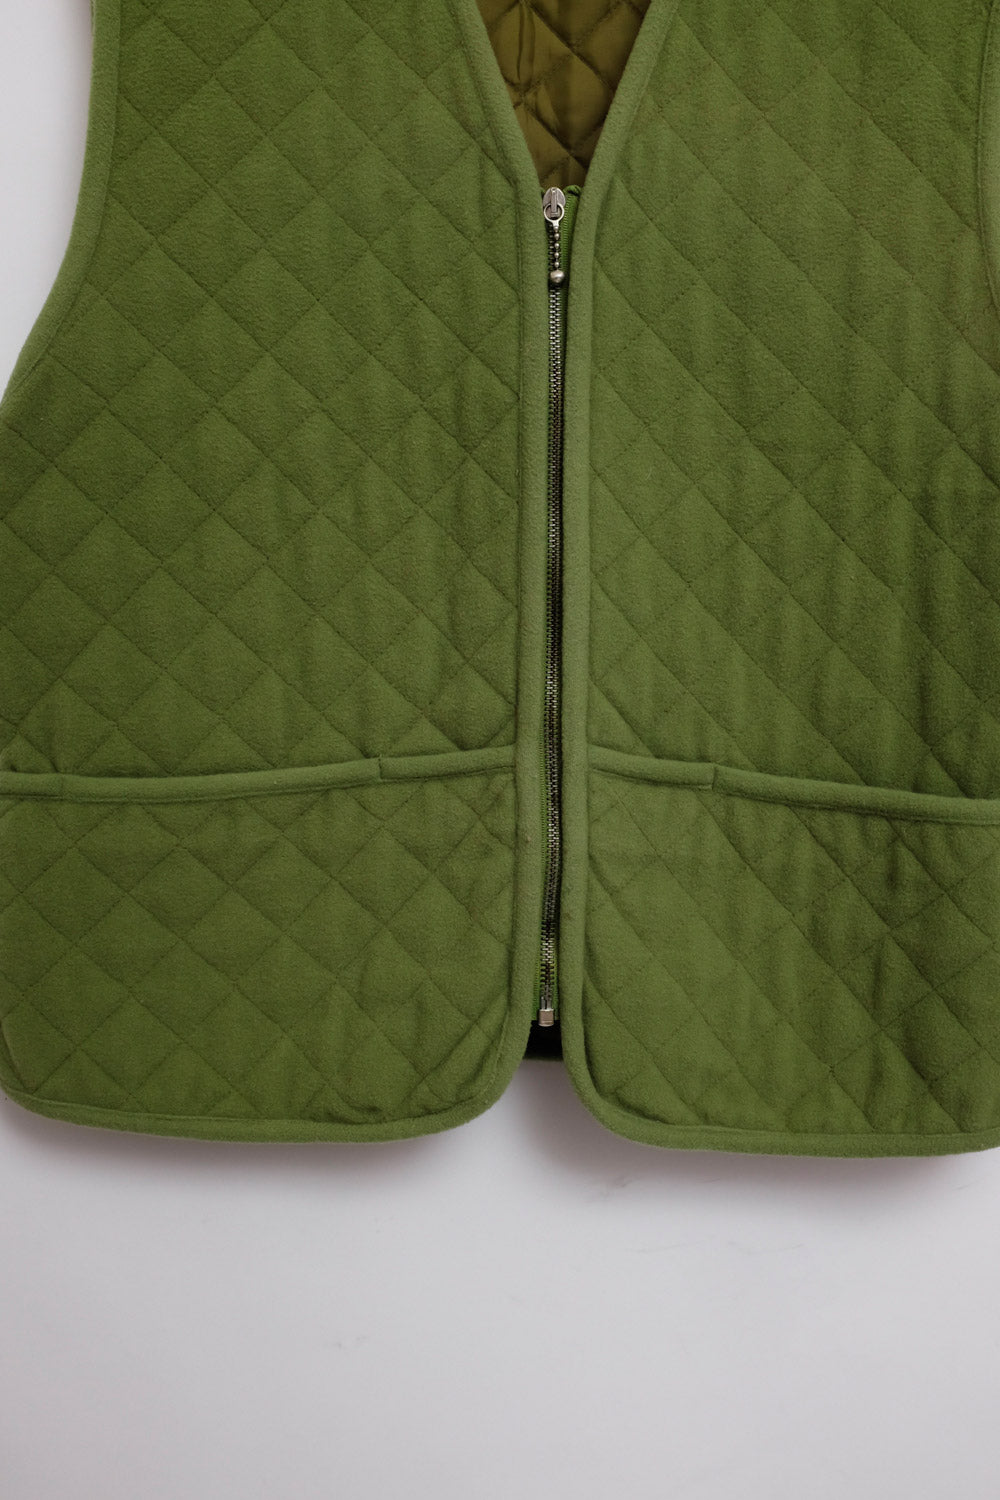 0025_QUILTED WOOL VEST